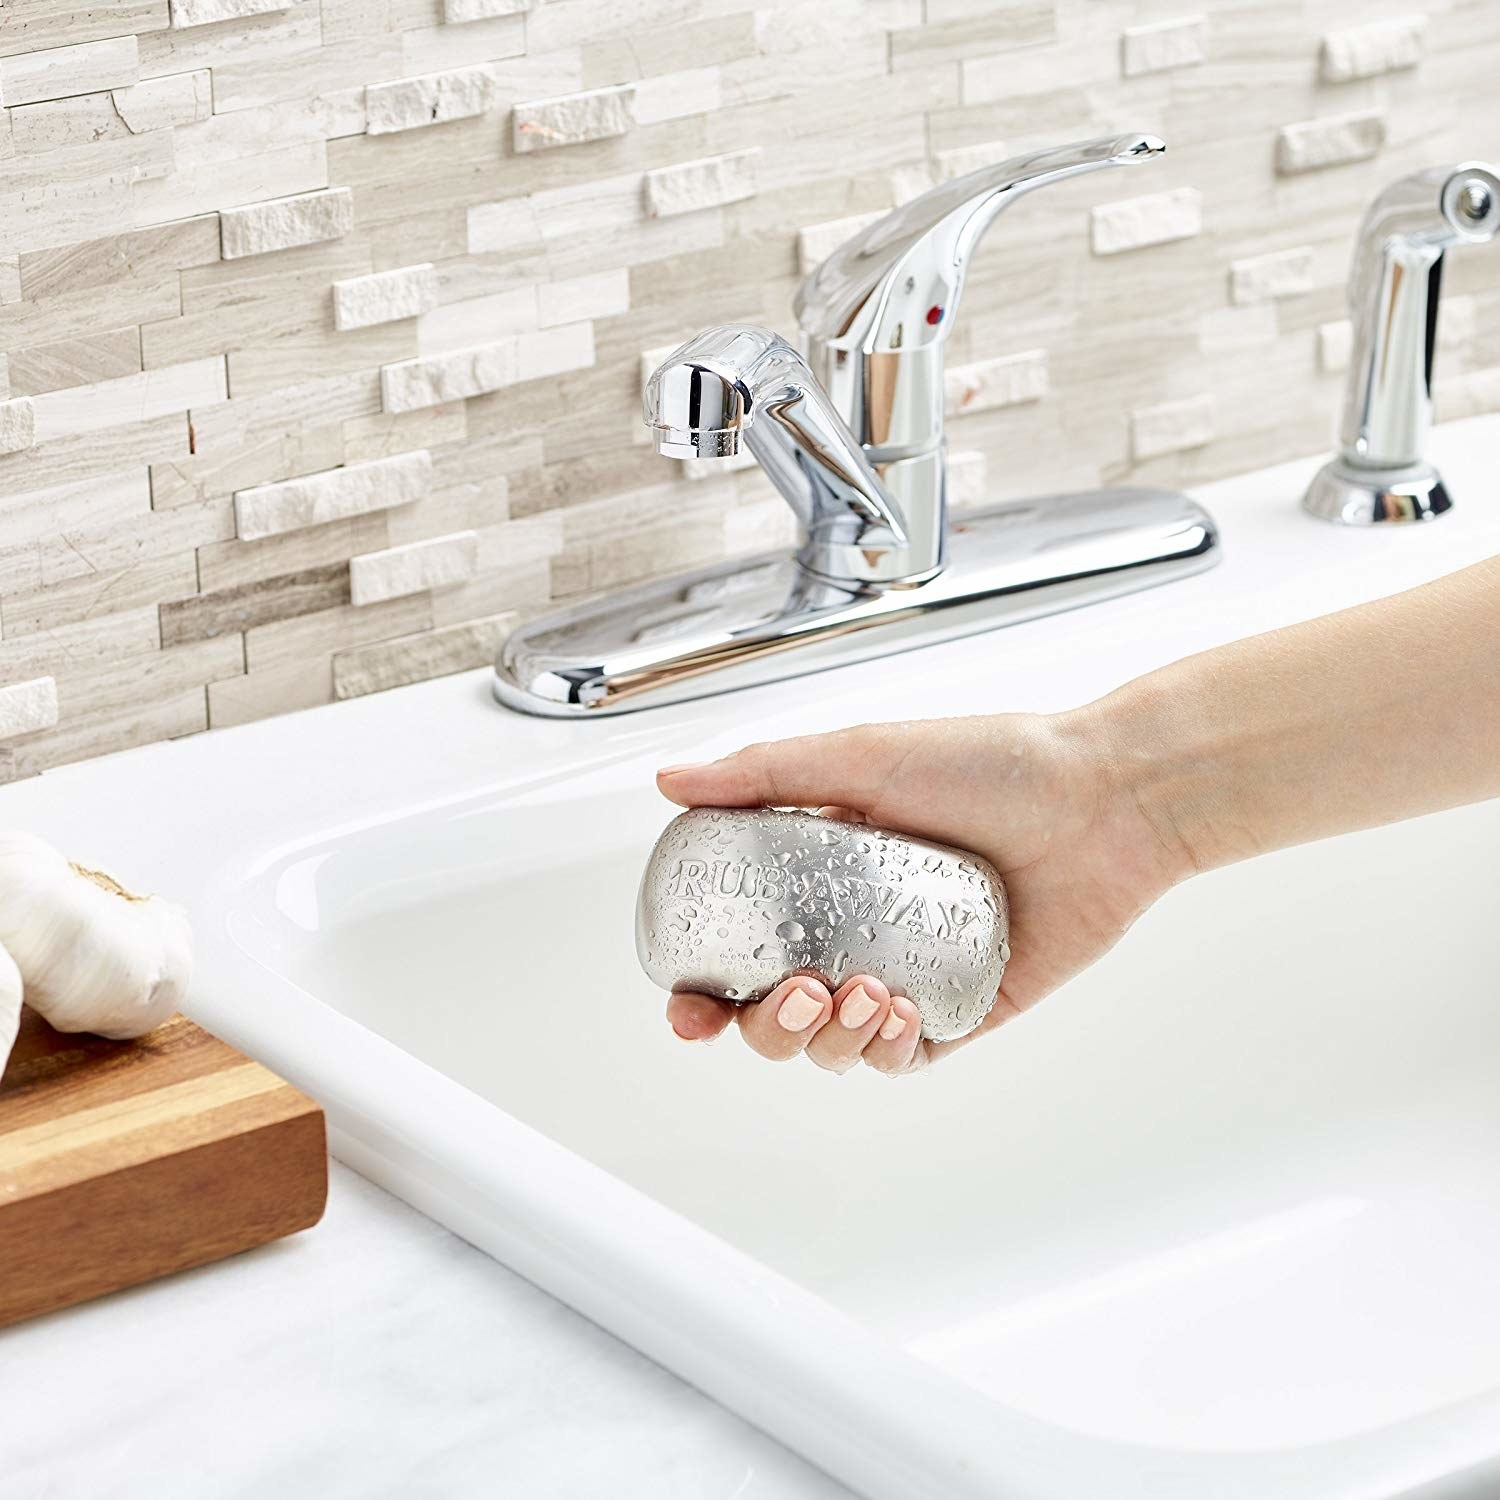 A person holding the kitchen bar over a sink